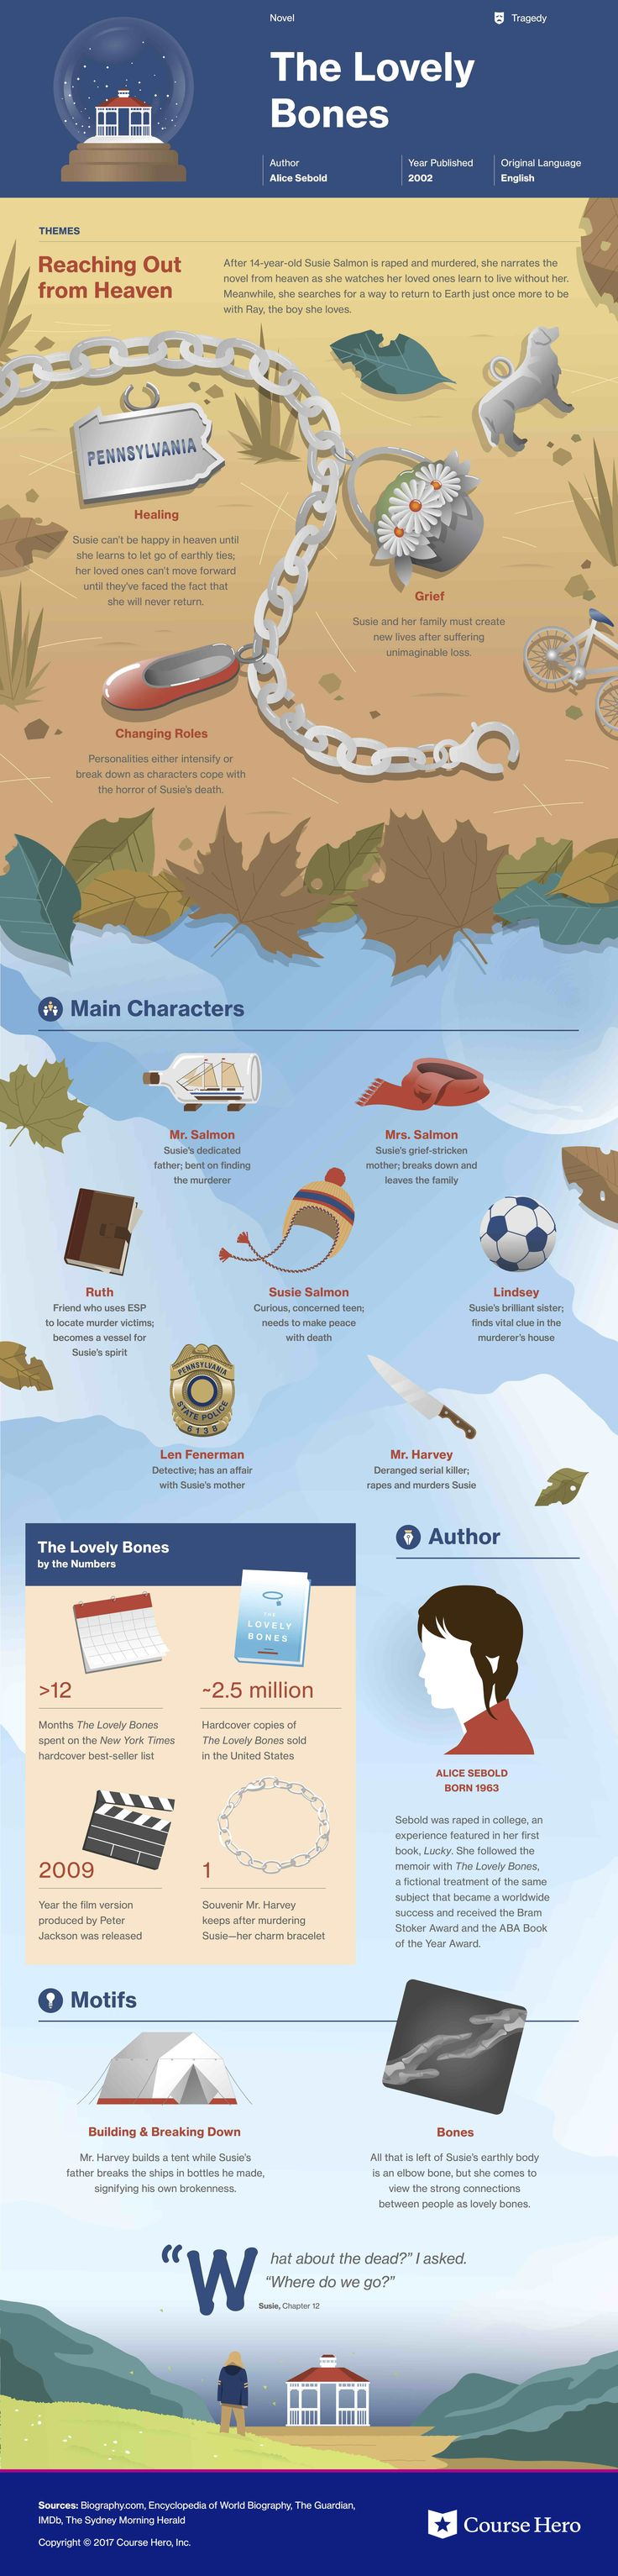 Alice Sebold's The Lovely Bones Infographic | Course Hero: https://www.coursehero.com/lit/The-Lovely-Bones/